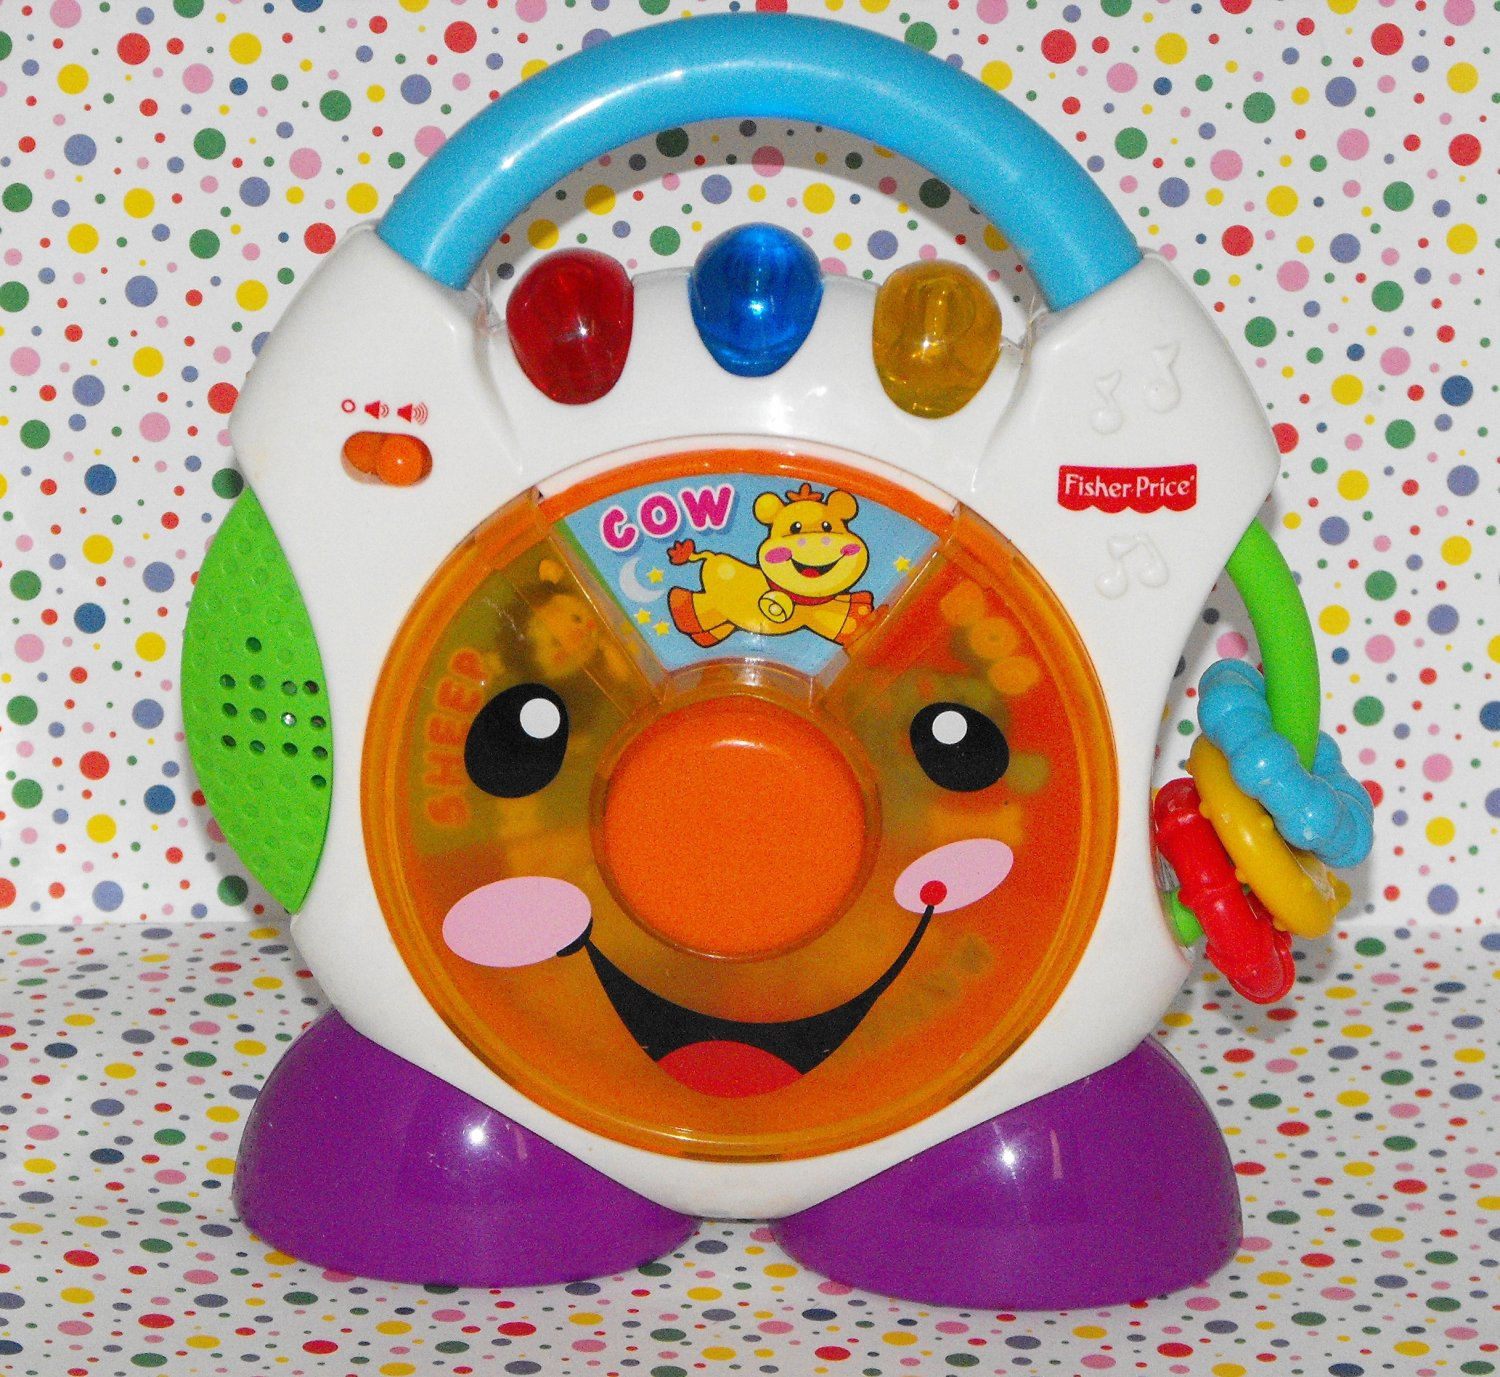 SOLD*Fisher-Price Nursery Rhymes CD Player